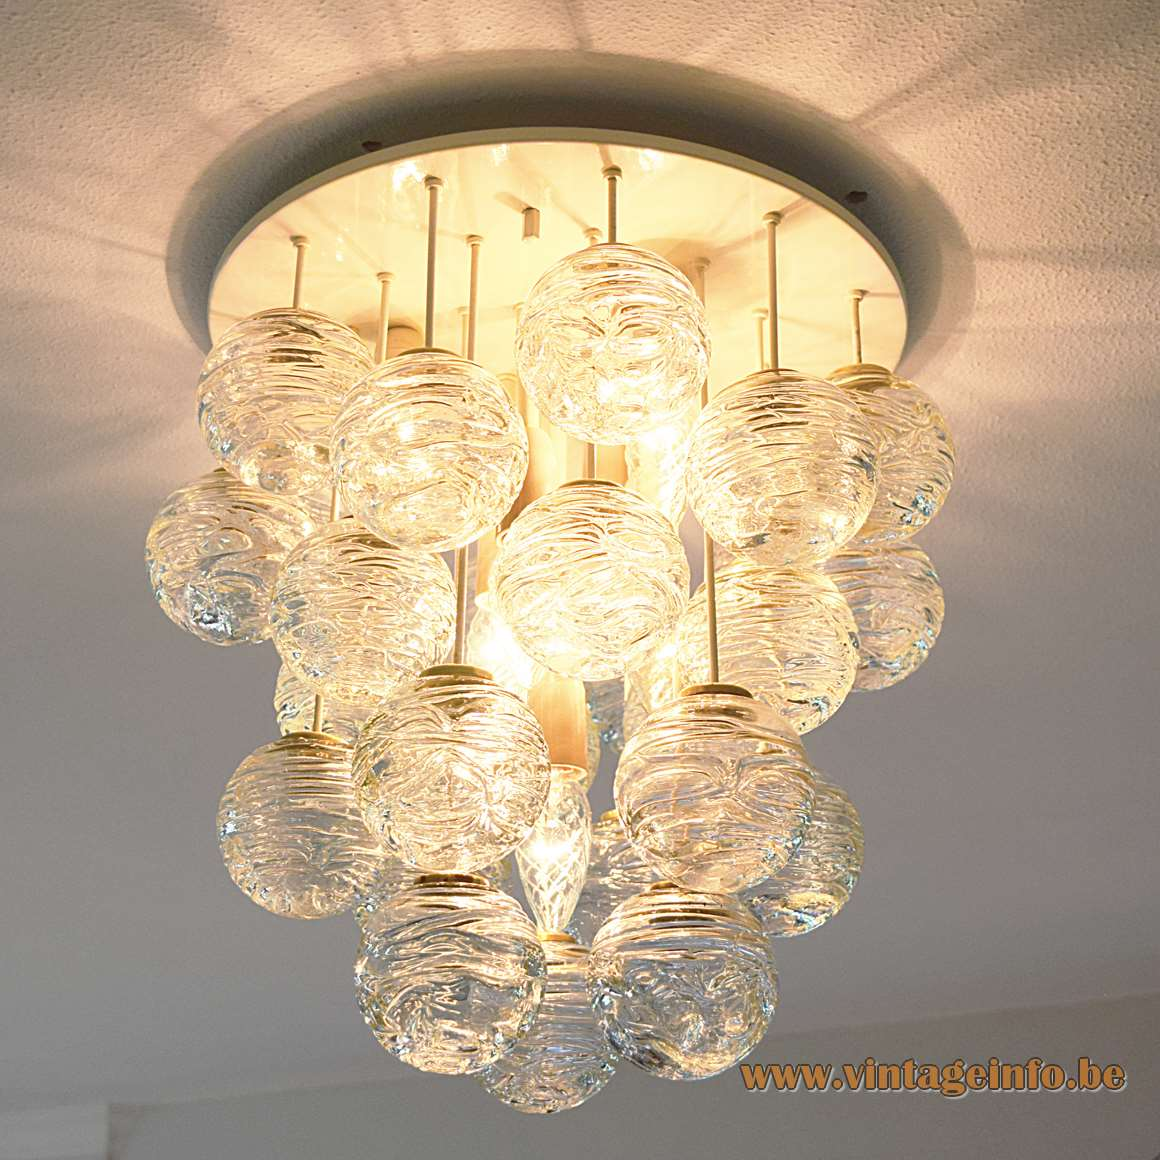 Doria Snowball Ceiling Light